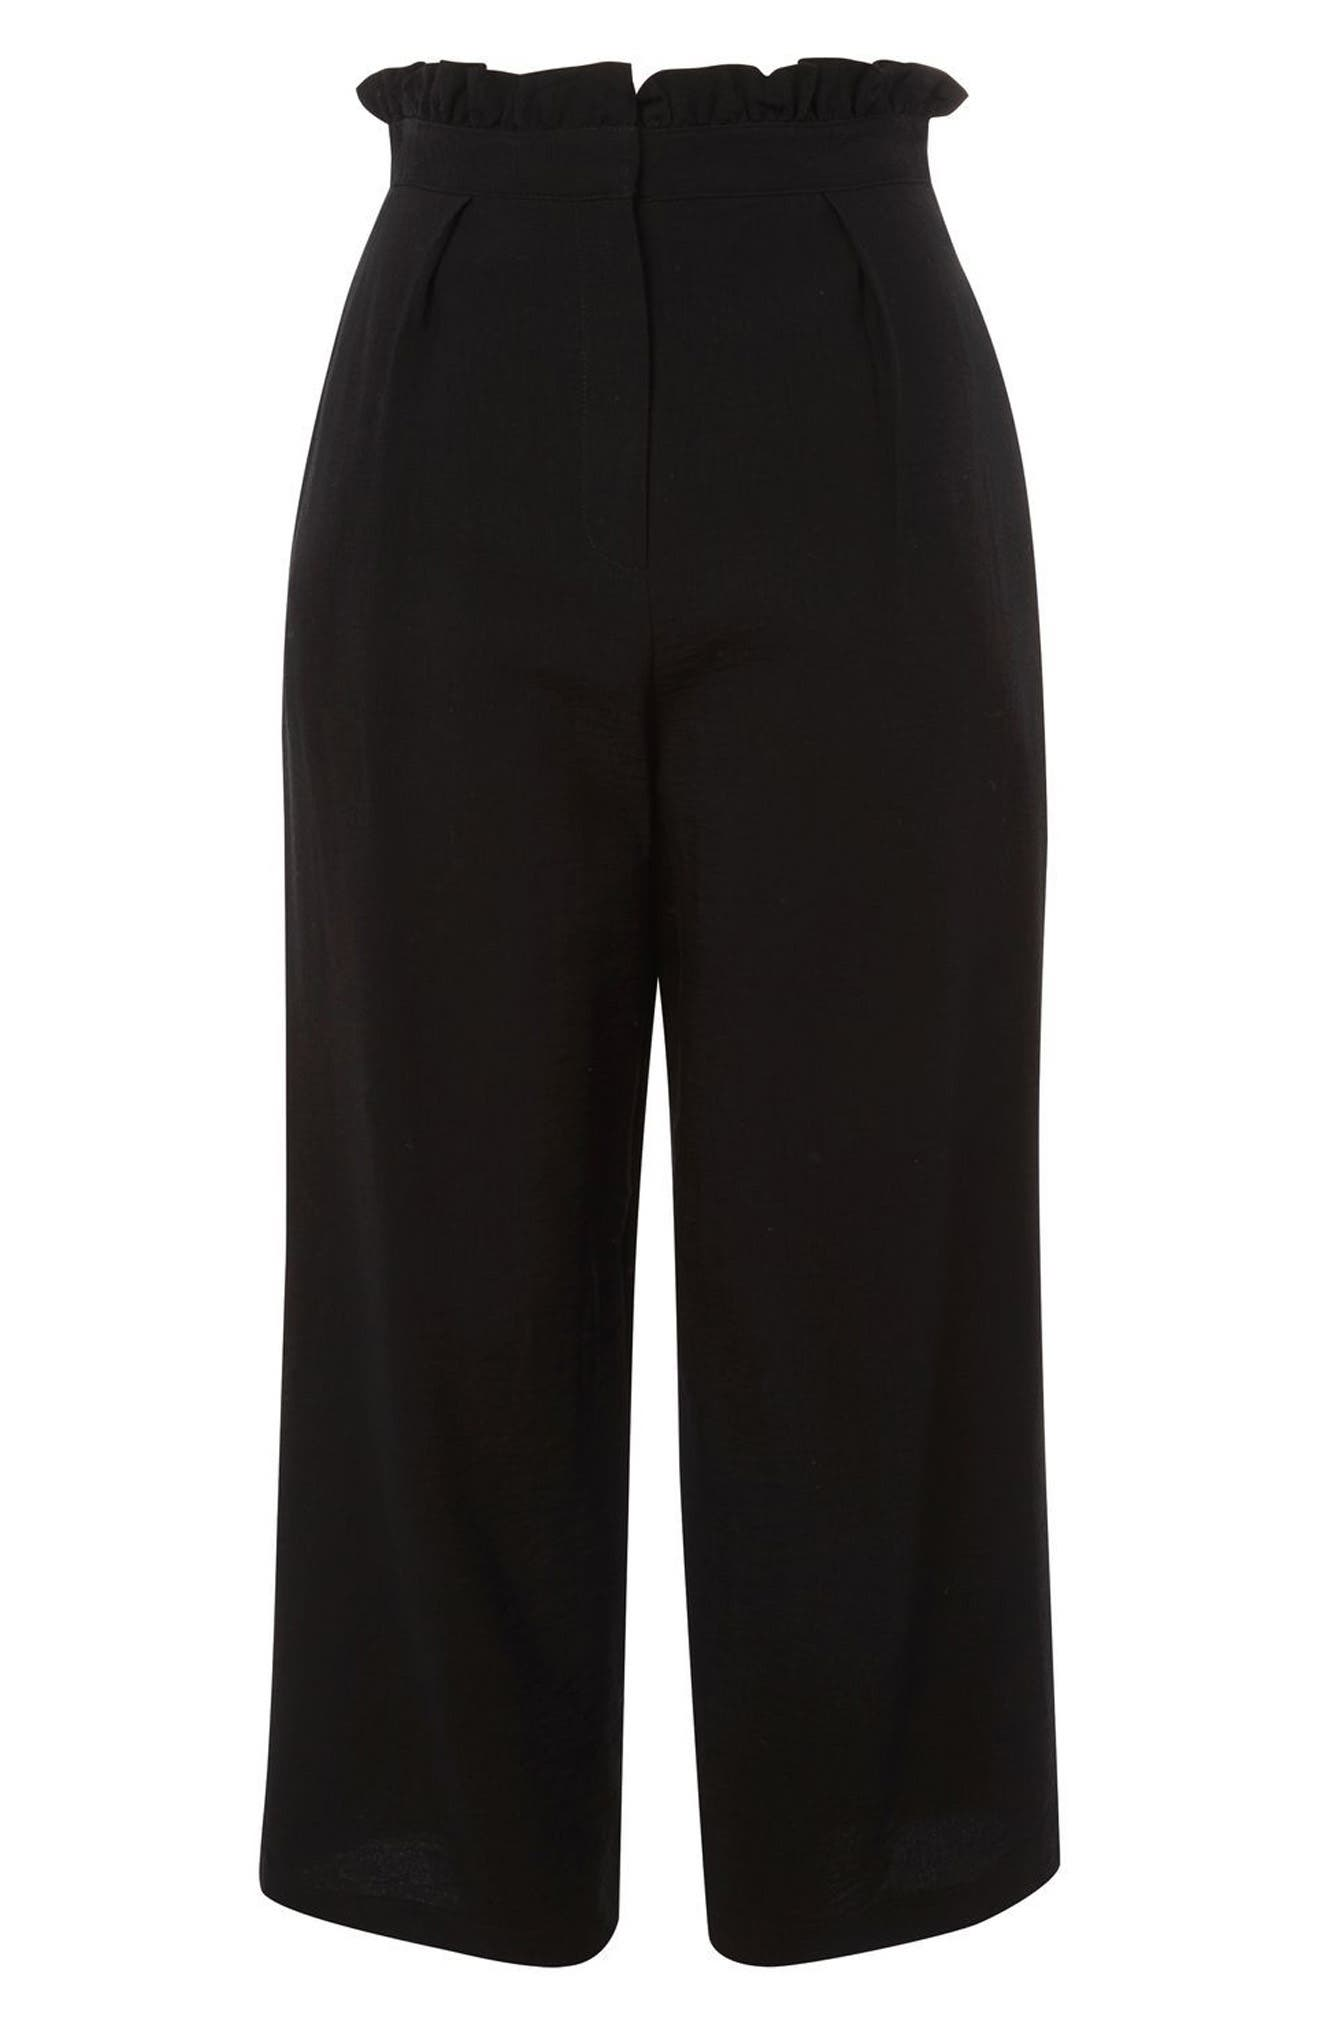 Alternate Image 3  - Topshop Ruffle Waist Trousers